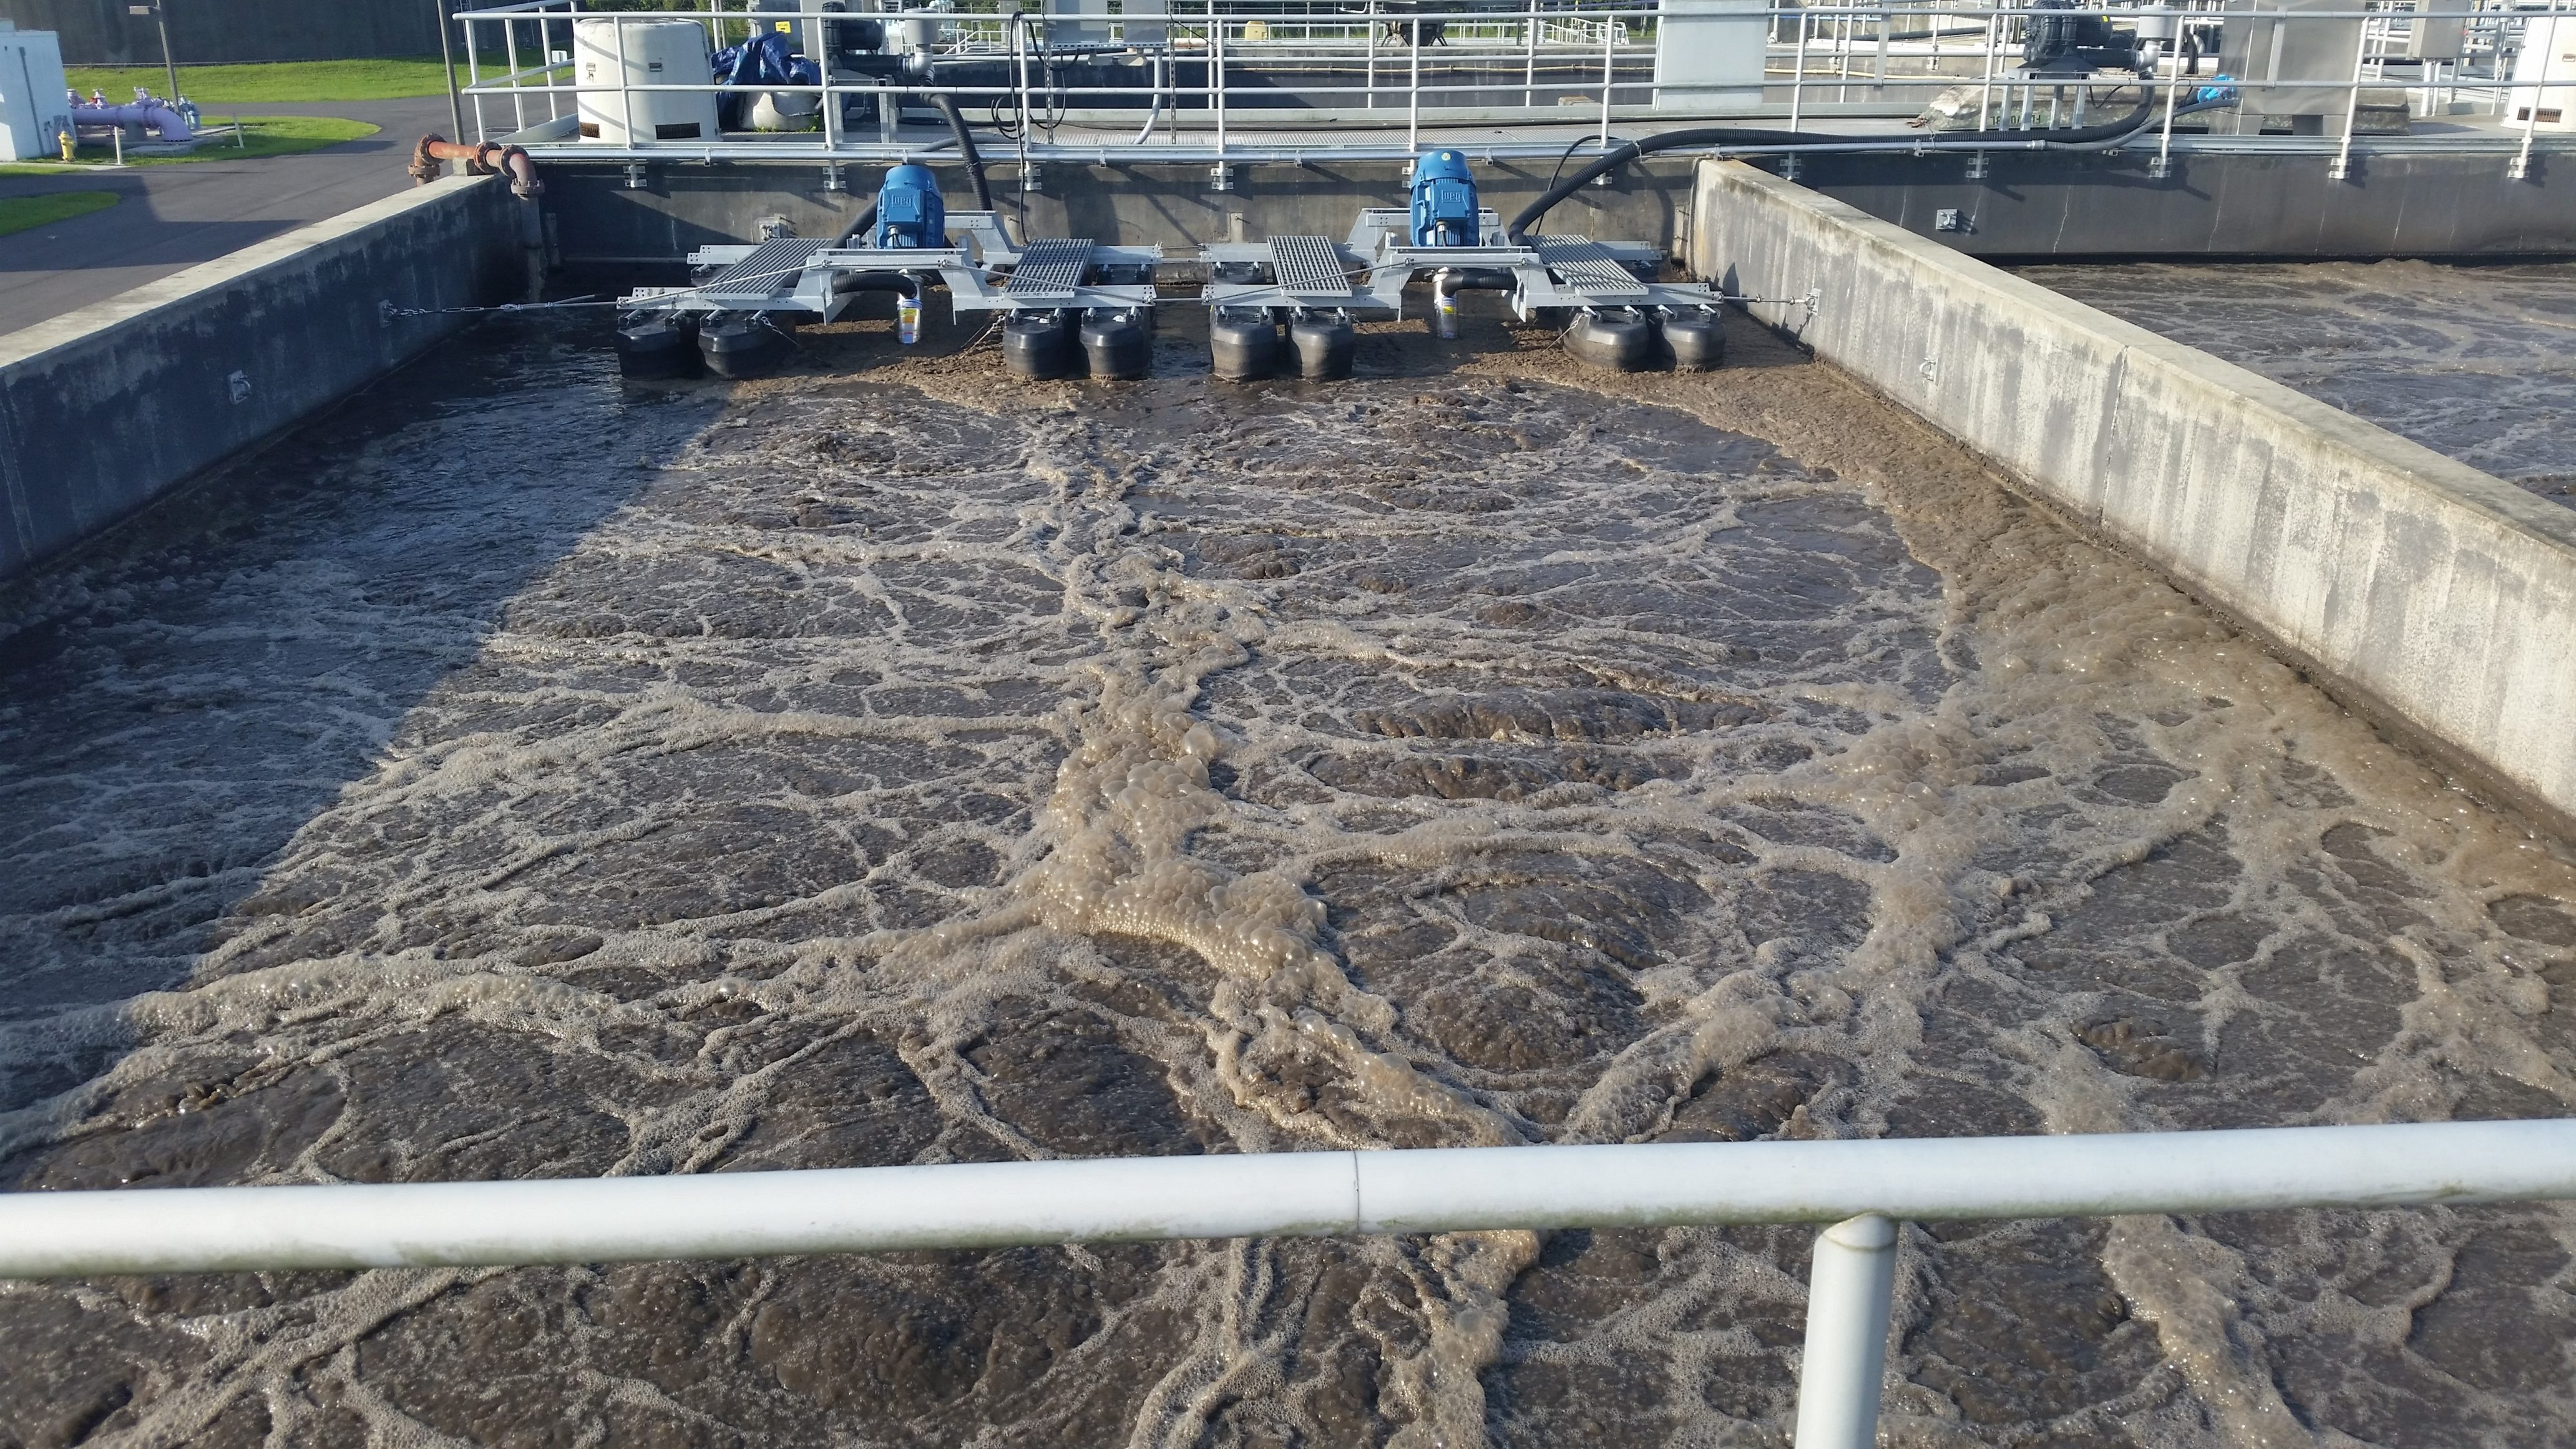 Wastewater Treatments Product : Municipal wastewater treatment systems equipment